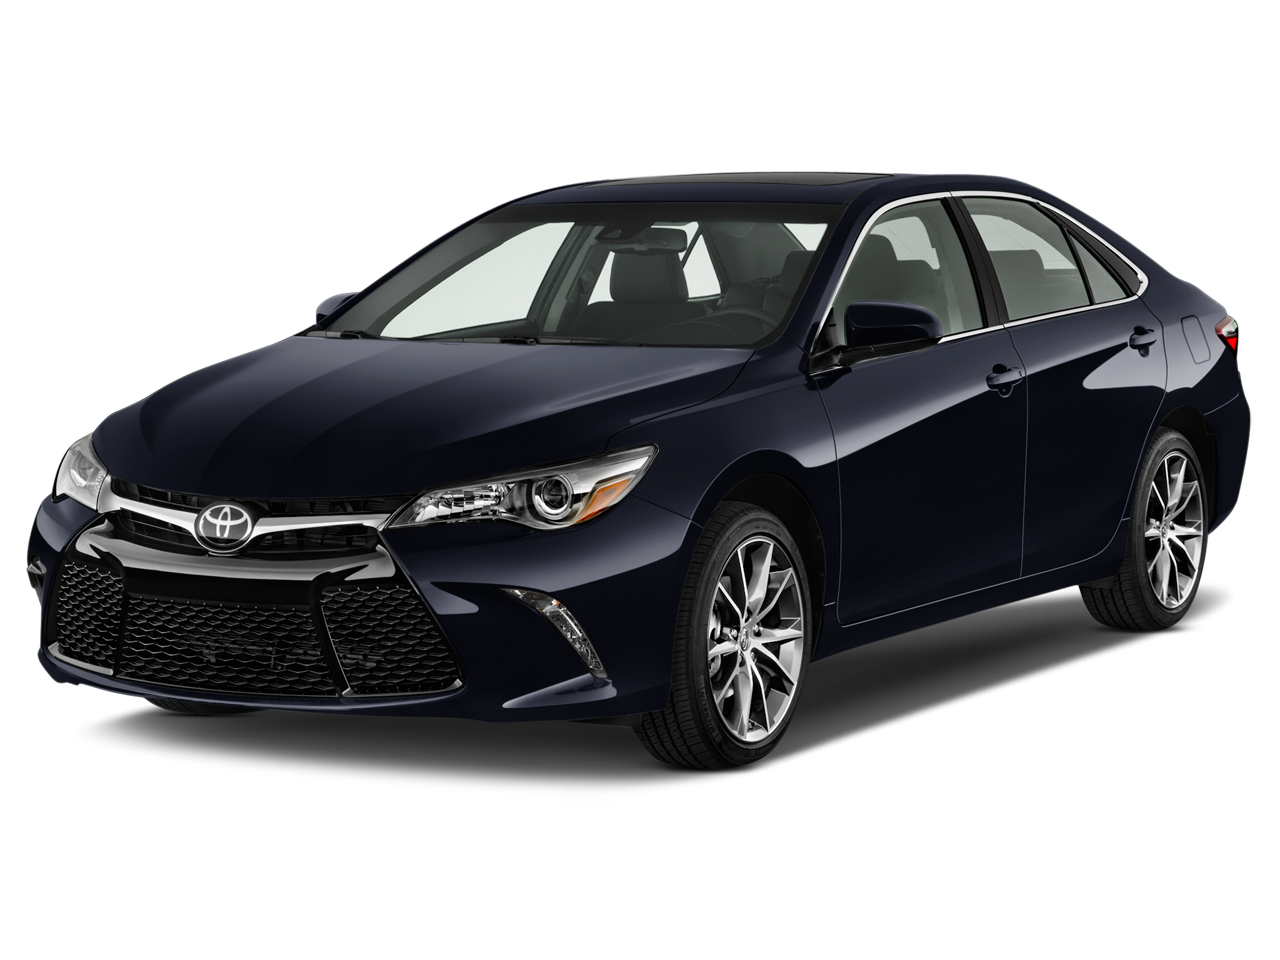 new 2017 toyota camry xse v6 near morristown nj toyota. Black Bedroom Furniture Sets. Home Design Ideas